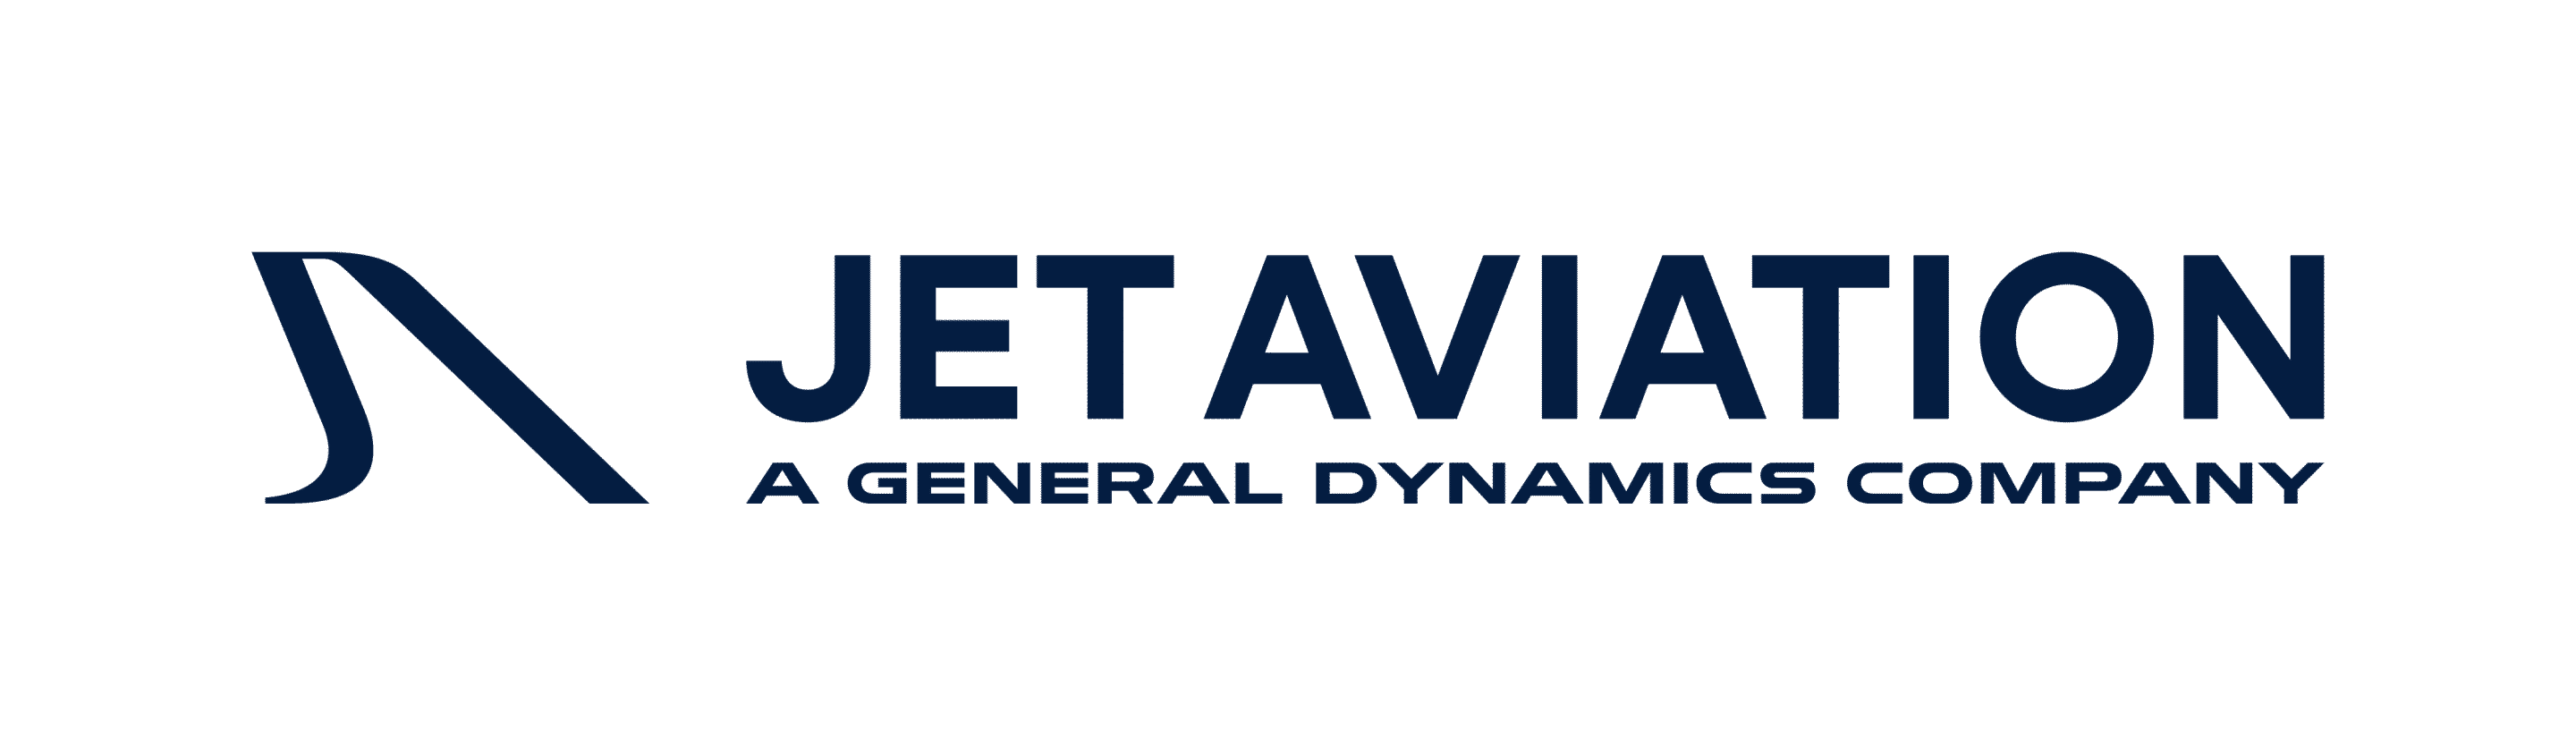 Jet Aviation logo_2021